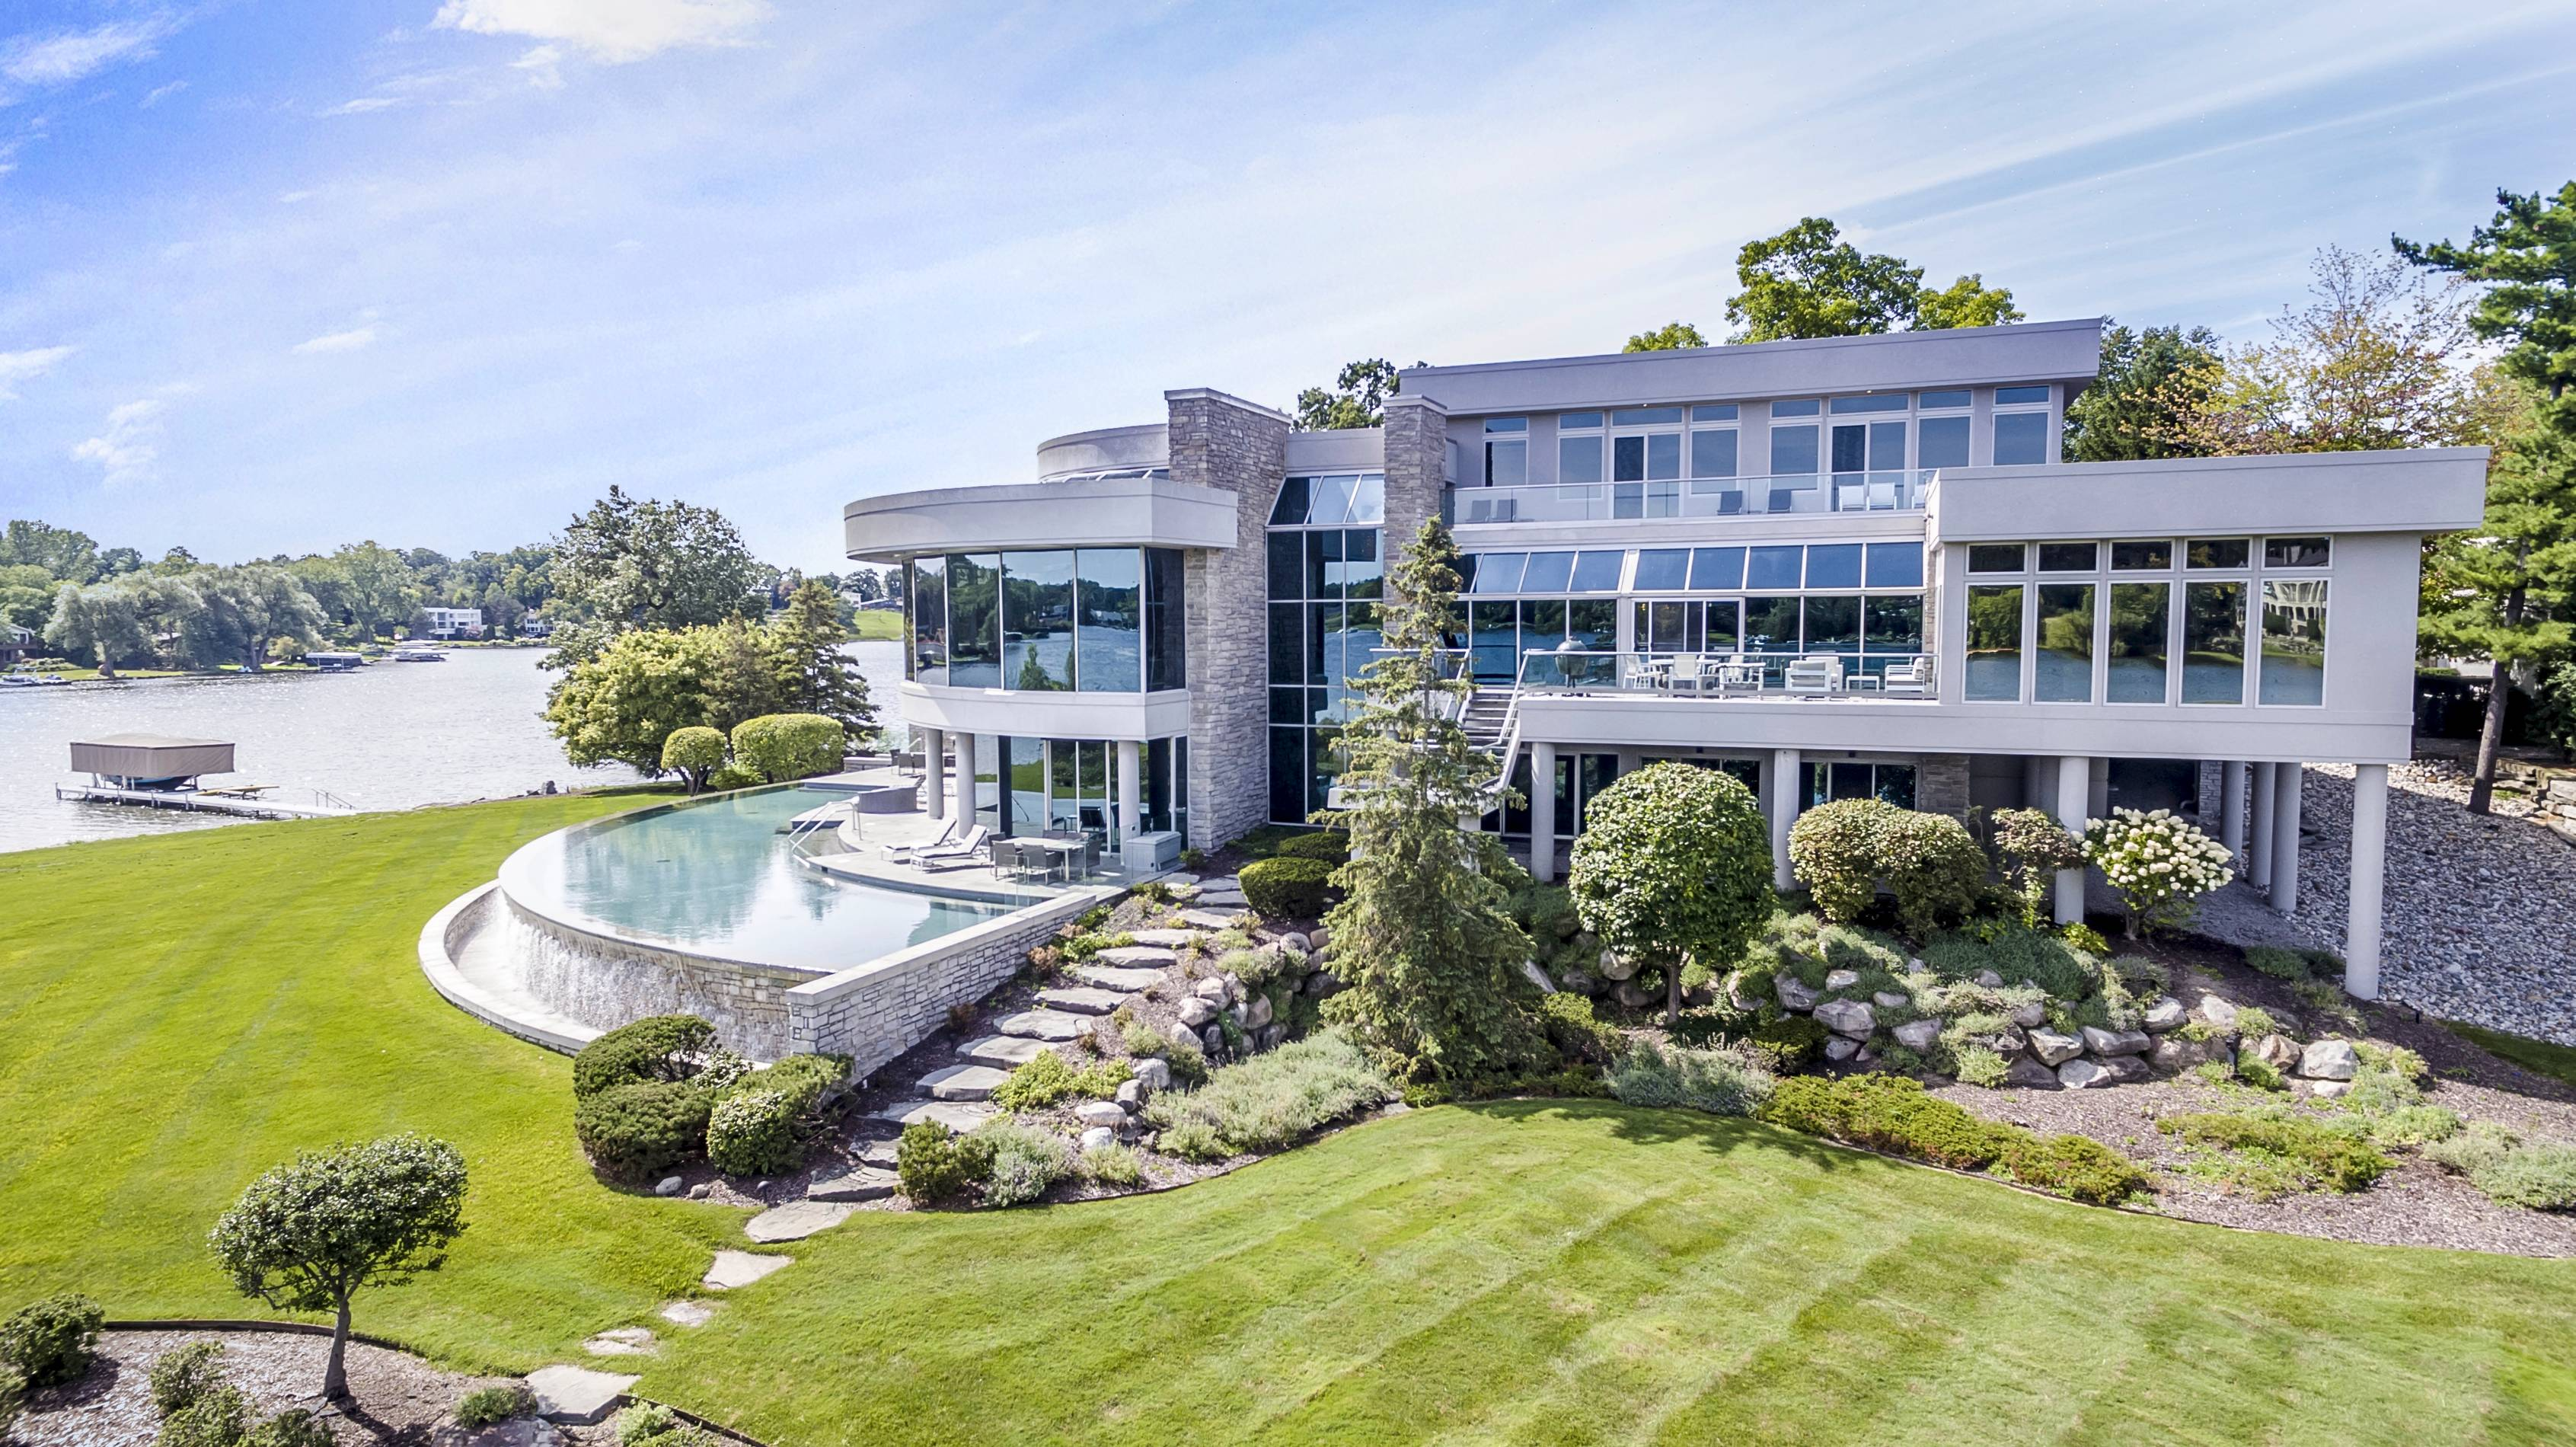 Matthew Stafford's Michigan Mansion For Sale